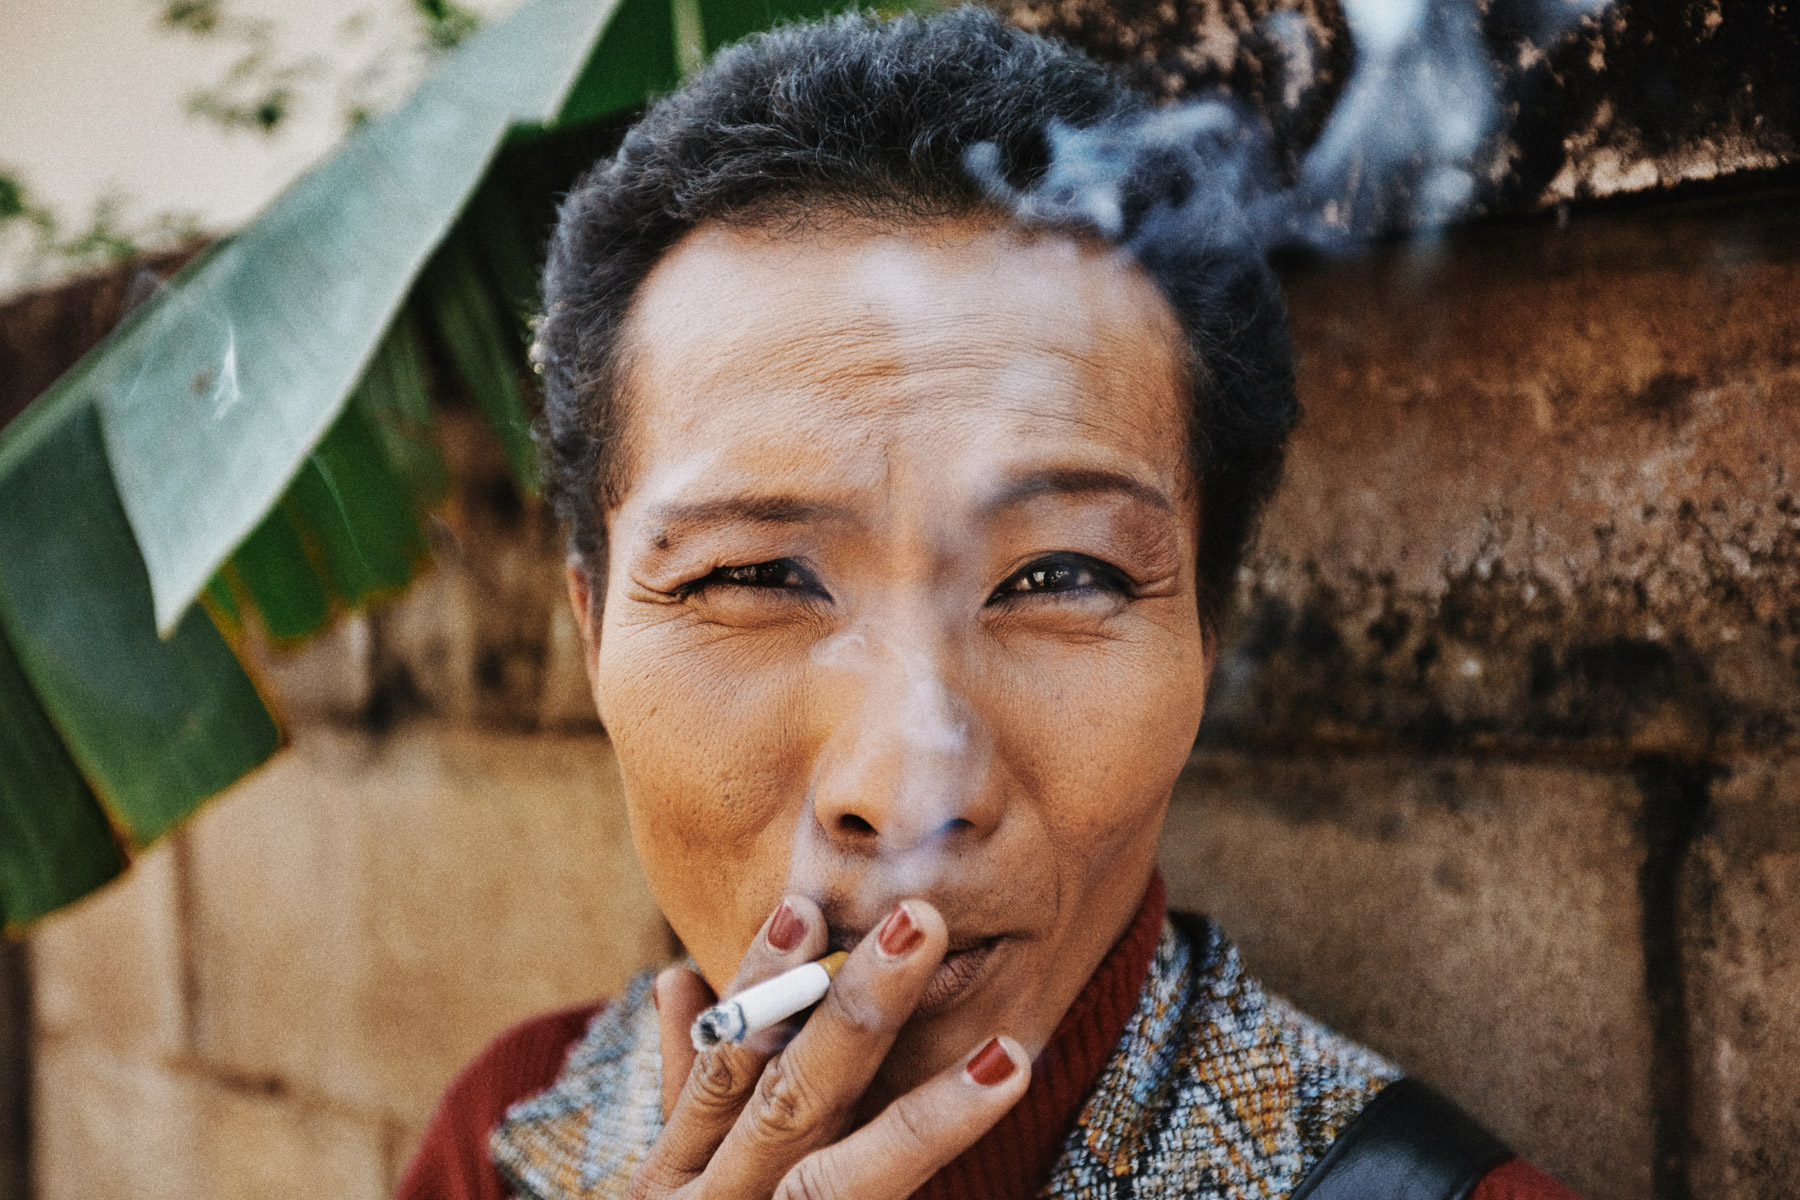 A portrait of Neung, a middle-aged transgendered woman in Phrae, Thailand.